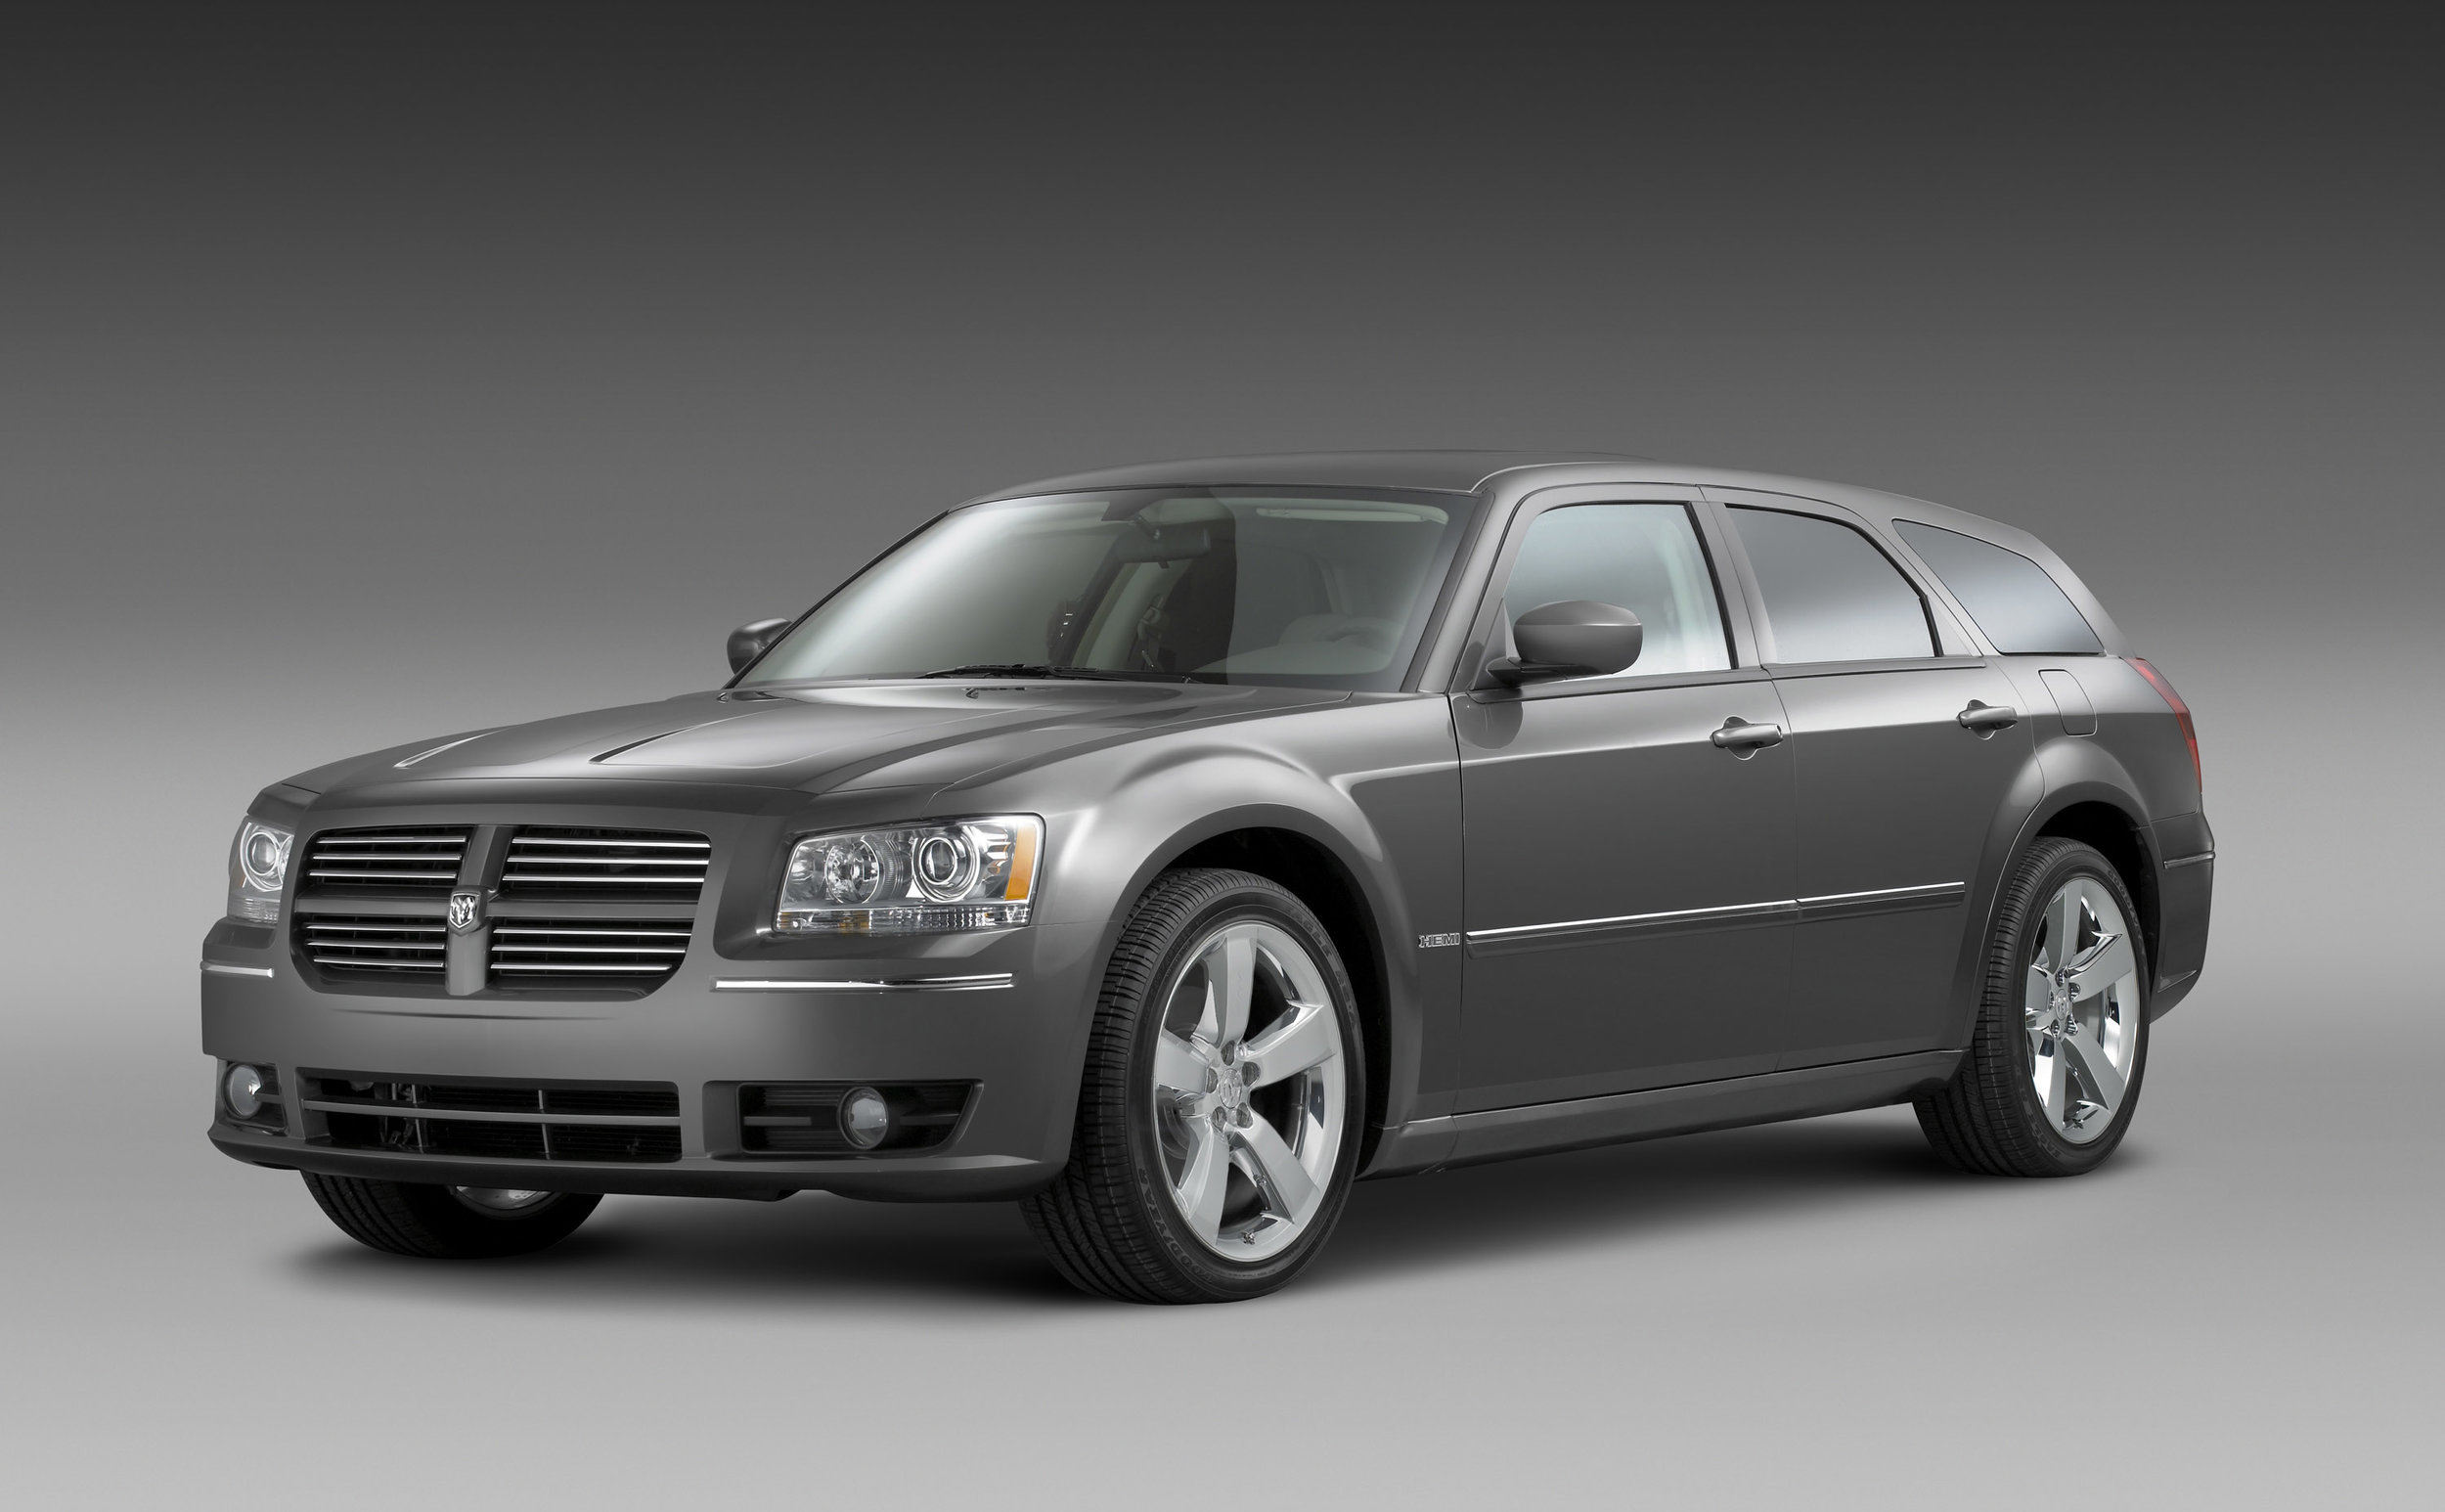 N1_2008 Dodge Magnum Photo Courtesy of Dodge.jpg